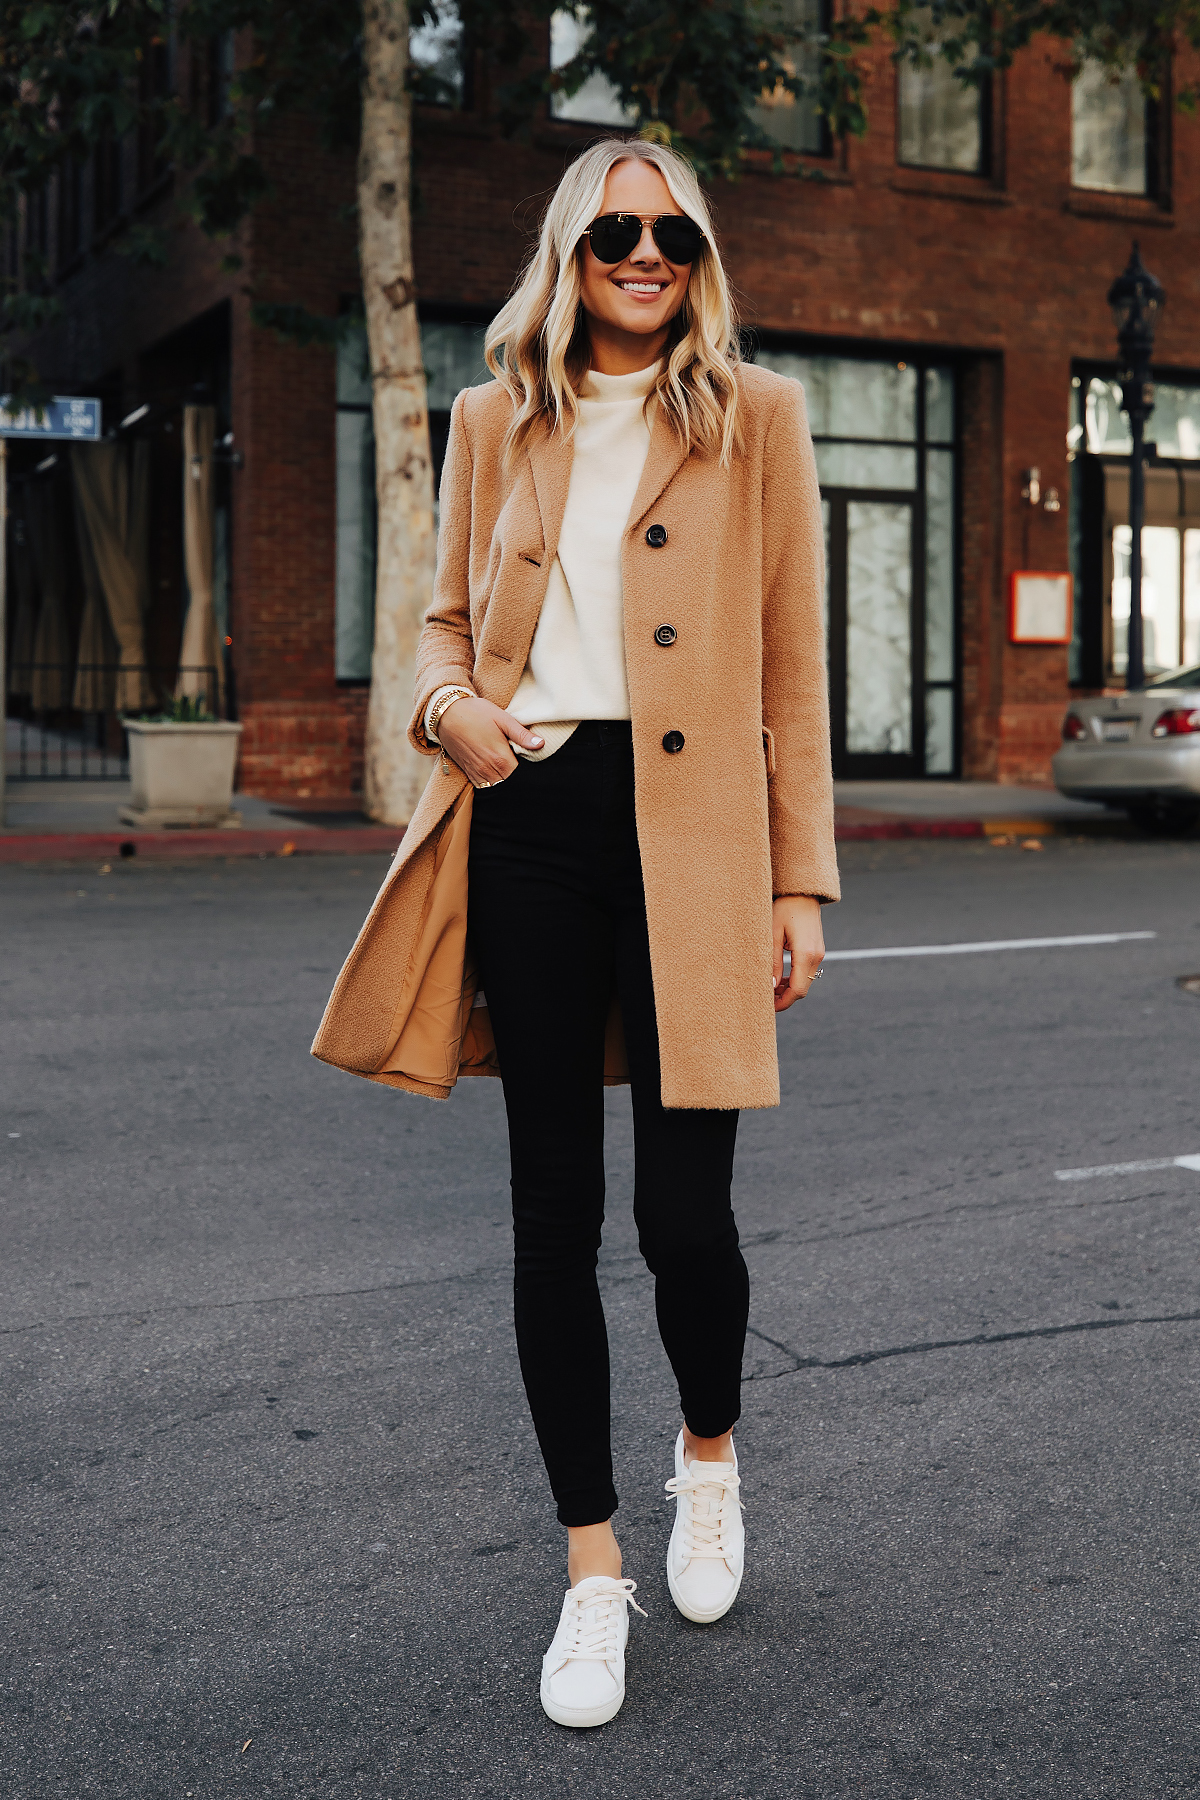 Fashion Jackson Wearing Ann Taylor Camel Coat White Sweater Black Skinny Jeans White Sneakers 3